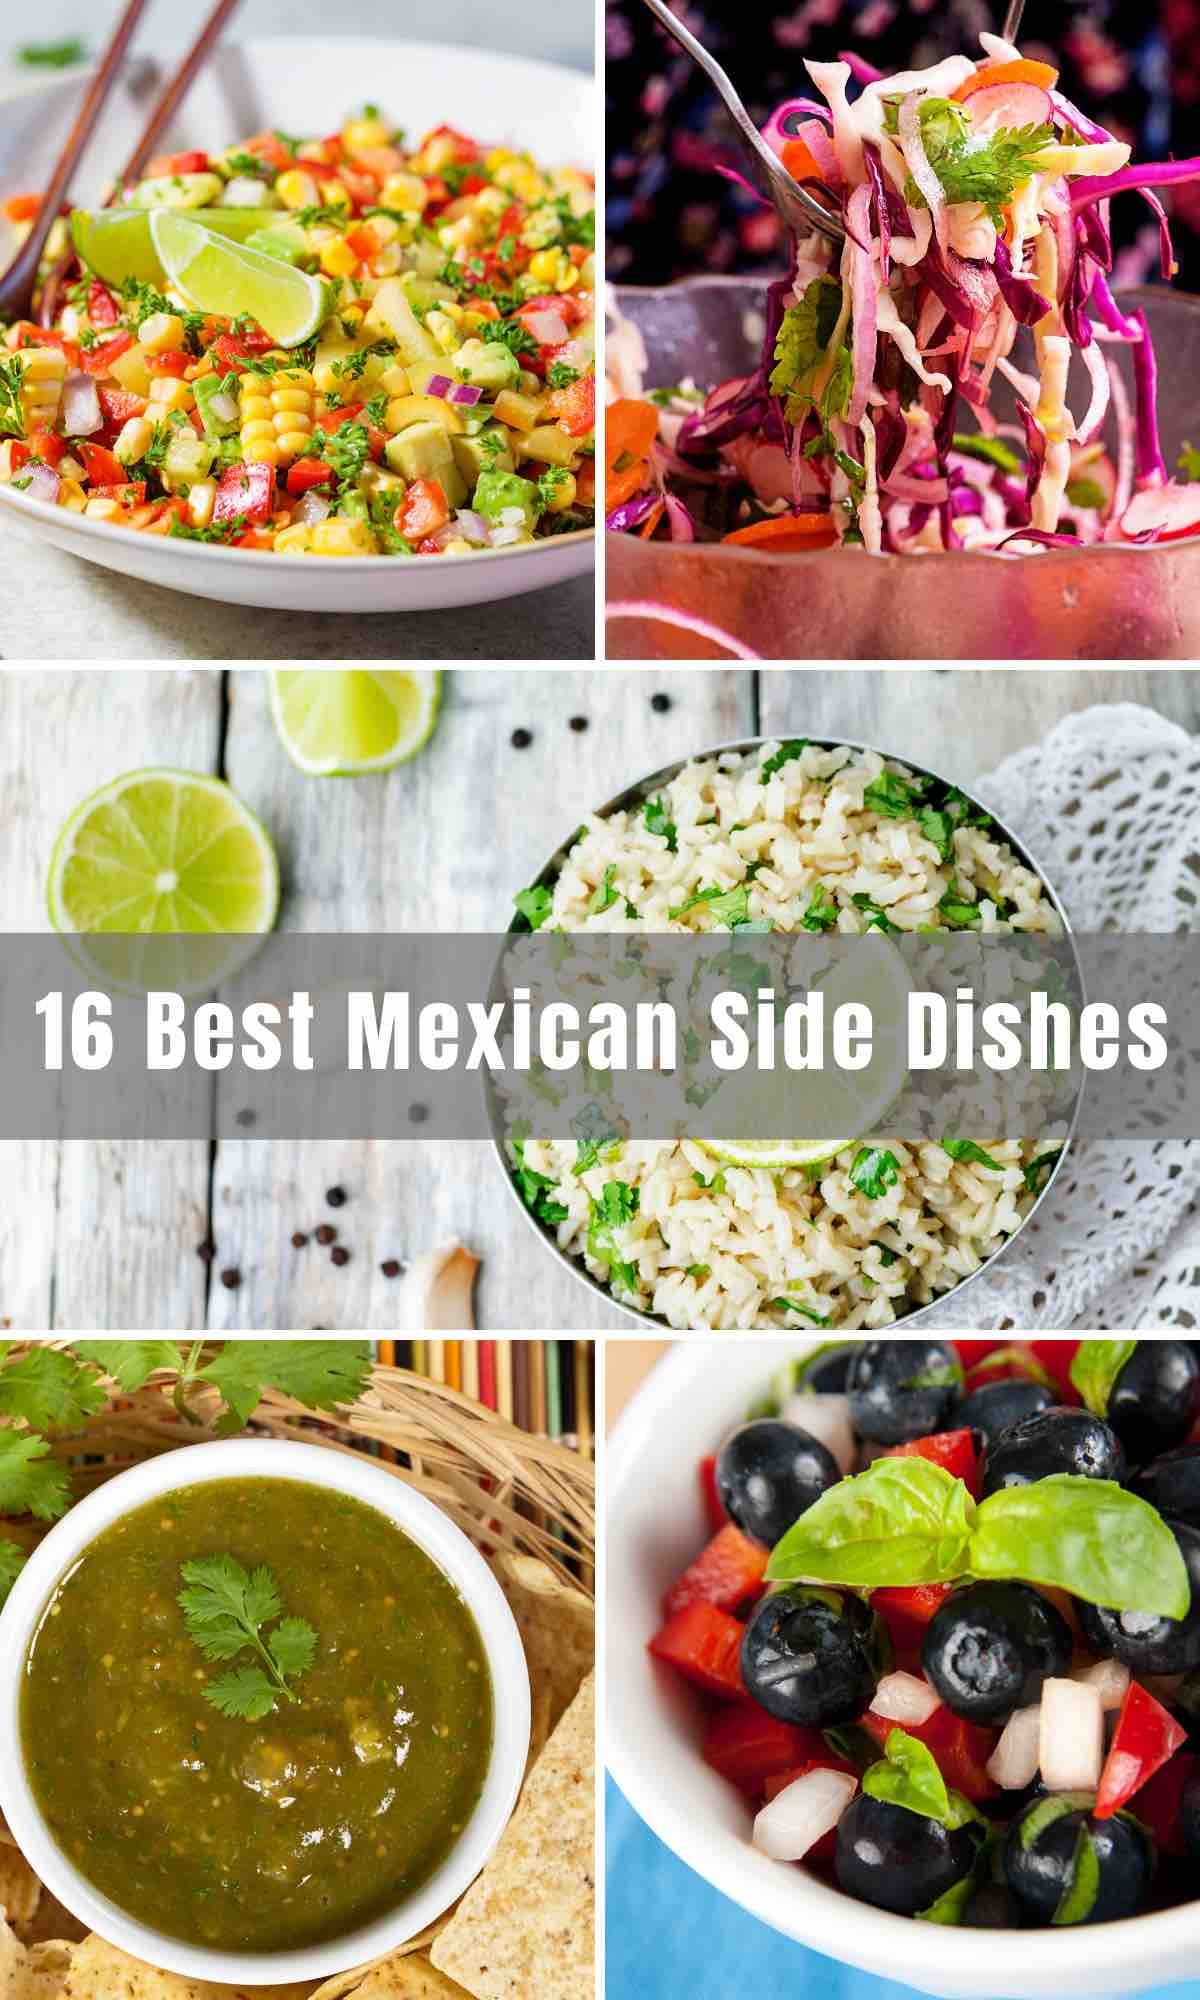 We've collected 16 Best Mexican Side Dishes that you can serve on Taco Tuesdays and other nights of the week when you want to have Mexican food. From Enchiladas to Mexican Street Corn Salad, to Easy Guacamole, we have listed all the popular Mexican side recipes below to serve with your tacos, fajitas, and other dishes.